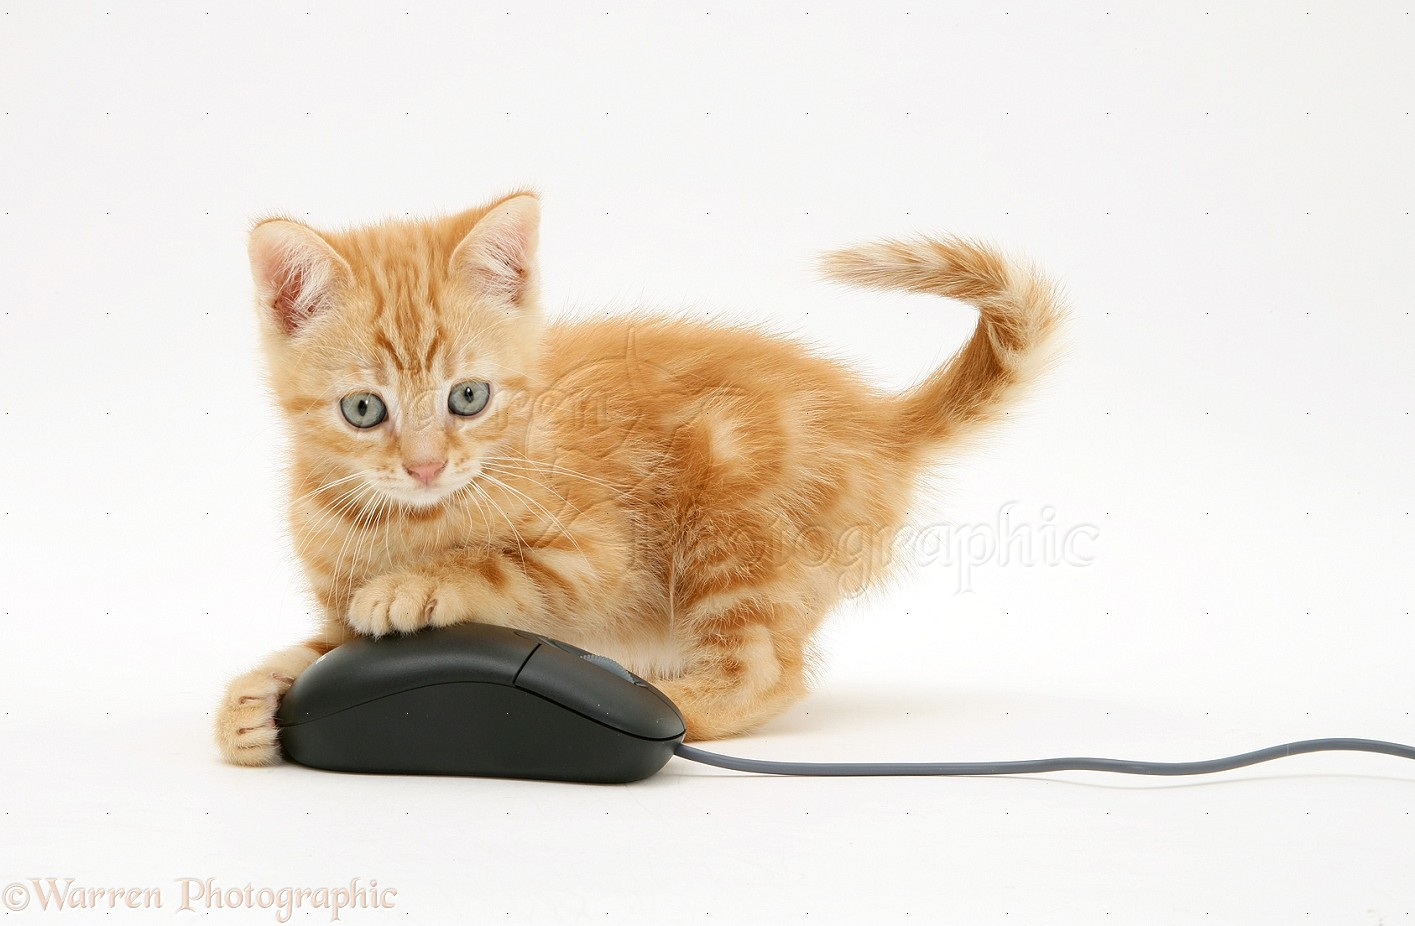 Wp09810 ginger kitten benedict with computer mouse